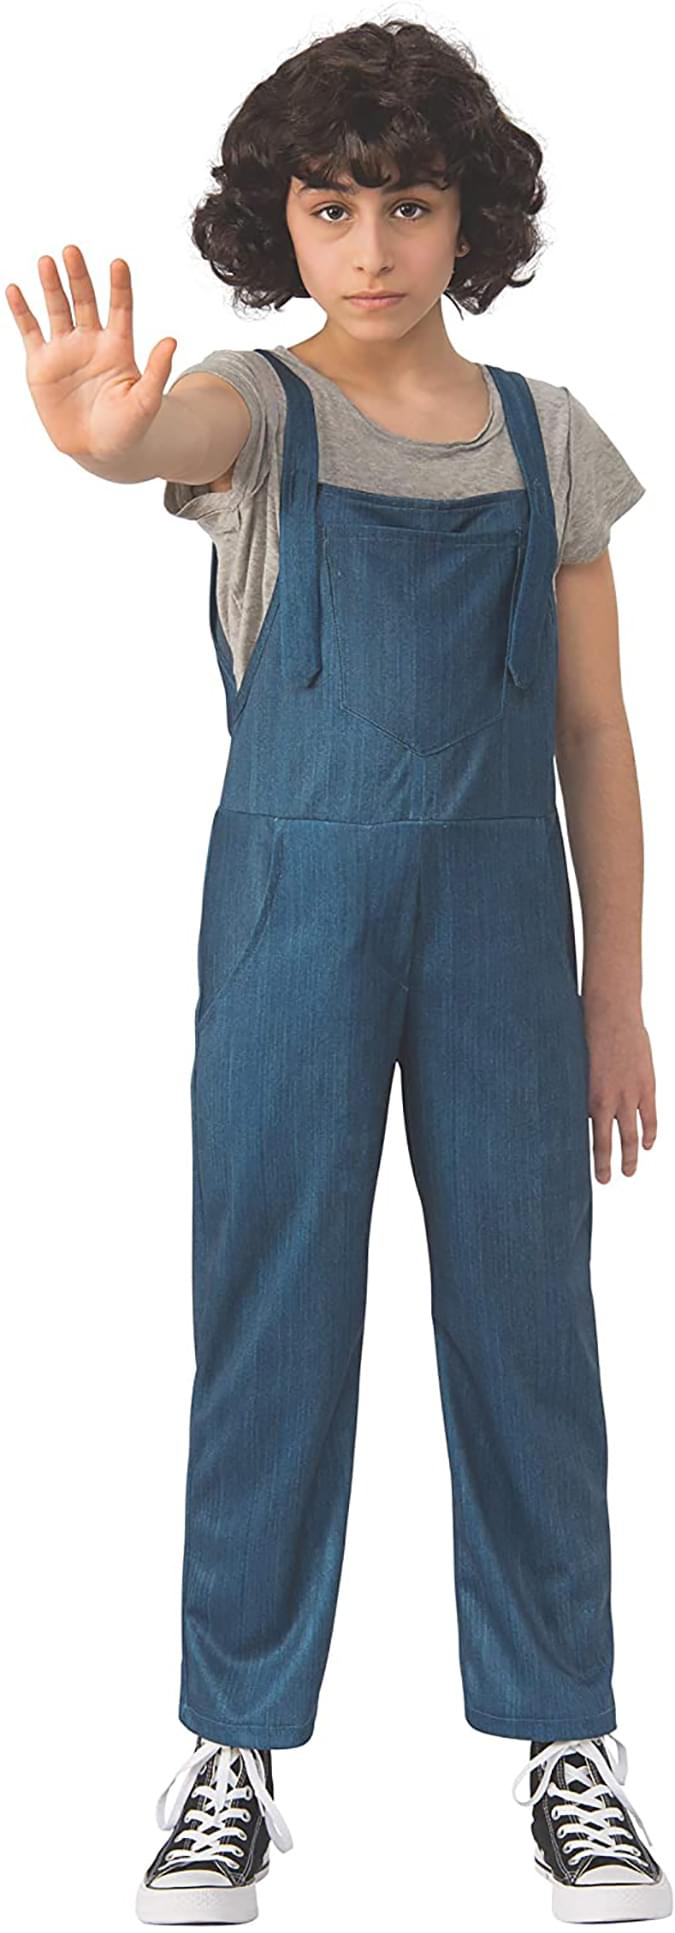 Stranger Things Eleven Overalls Child Costume